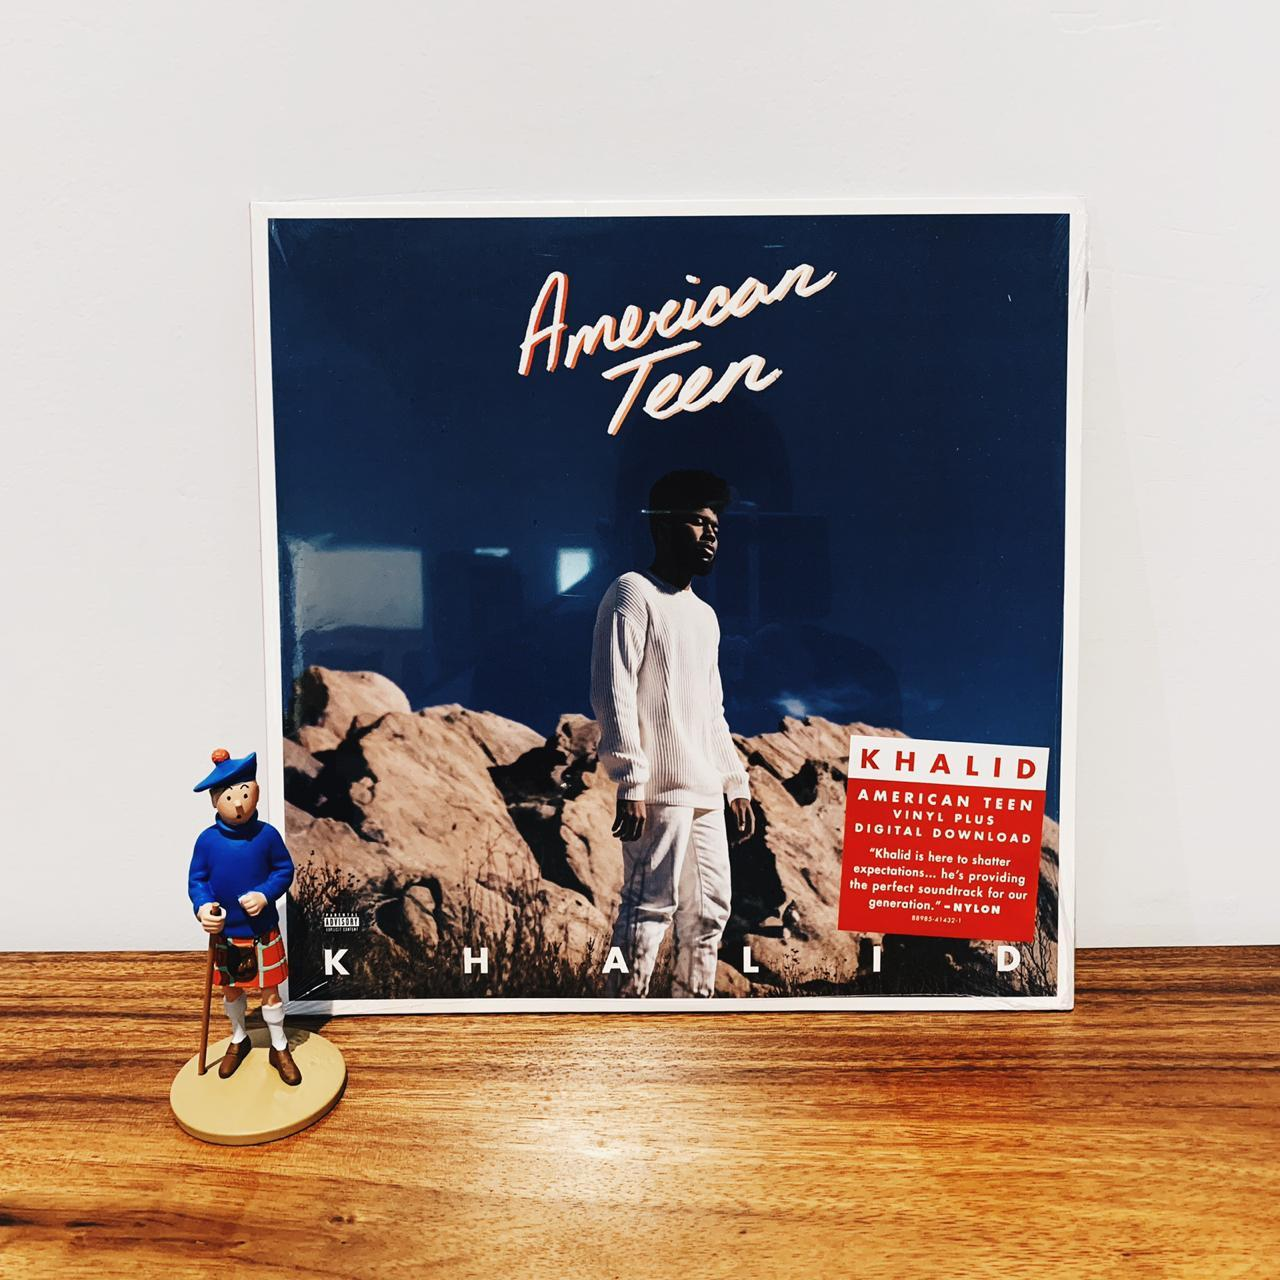 Piringan Hitam / Vinyl / Lp Khalid - American Teen By Playlist Record Store.